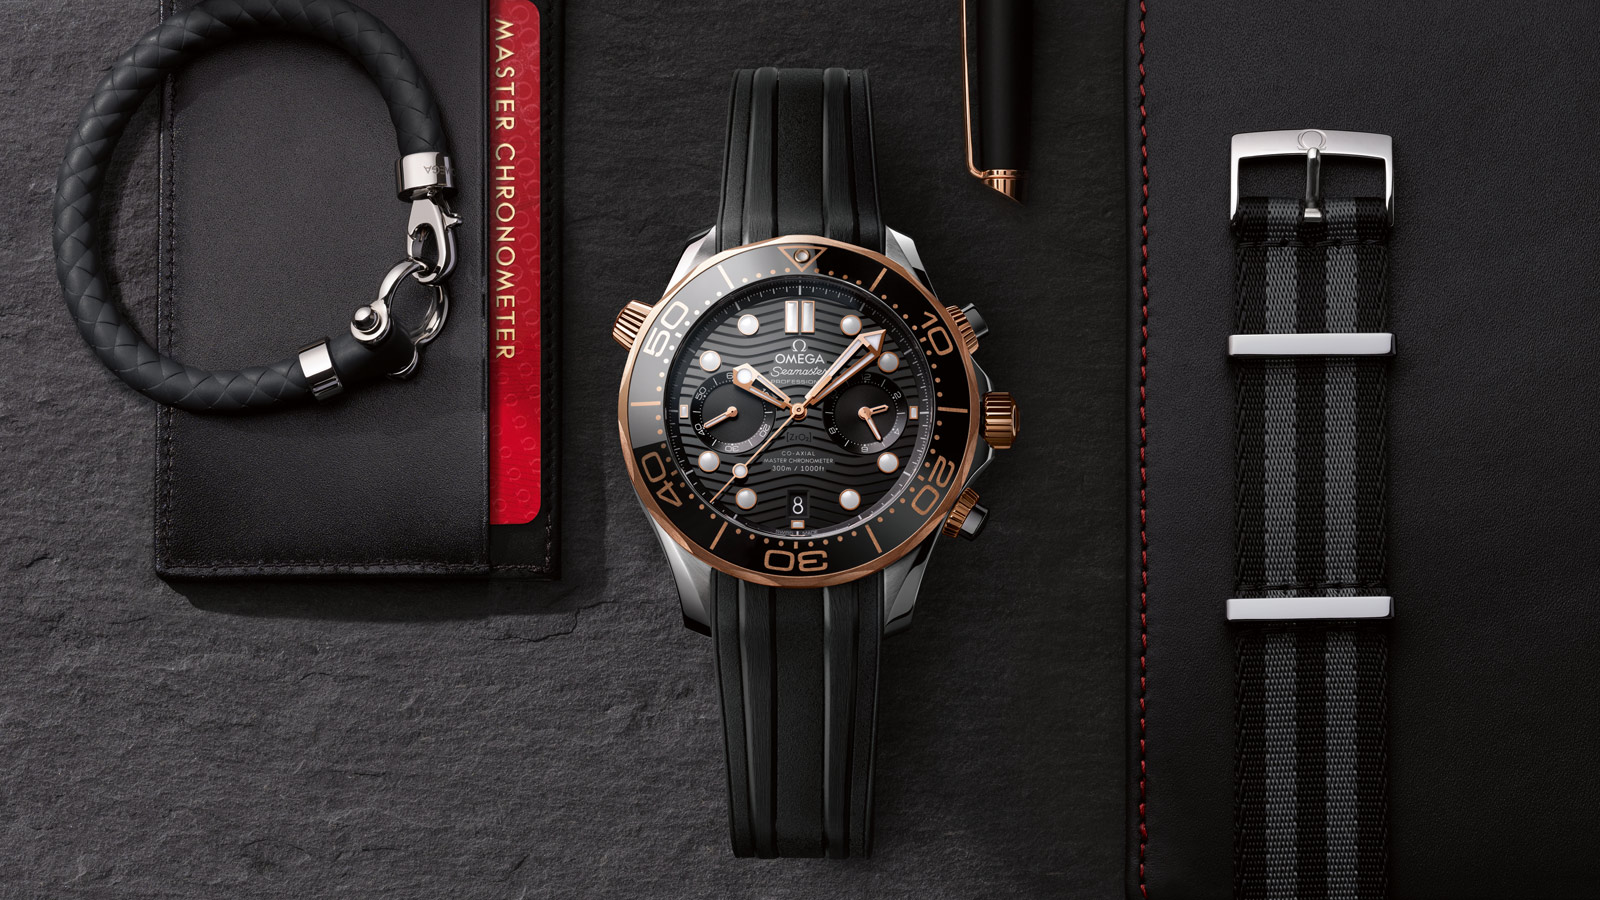 Seamaster ダイバー 300M Diver 300M Omega Co‑Axial Master Chronometer Chronograph 44 mm ウォッチ - 210.22.44.51.01.001